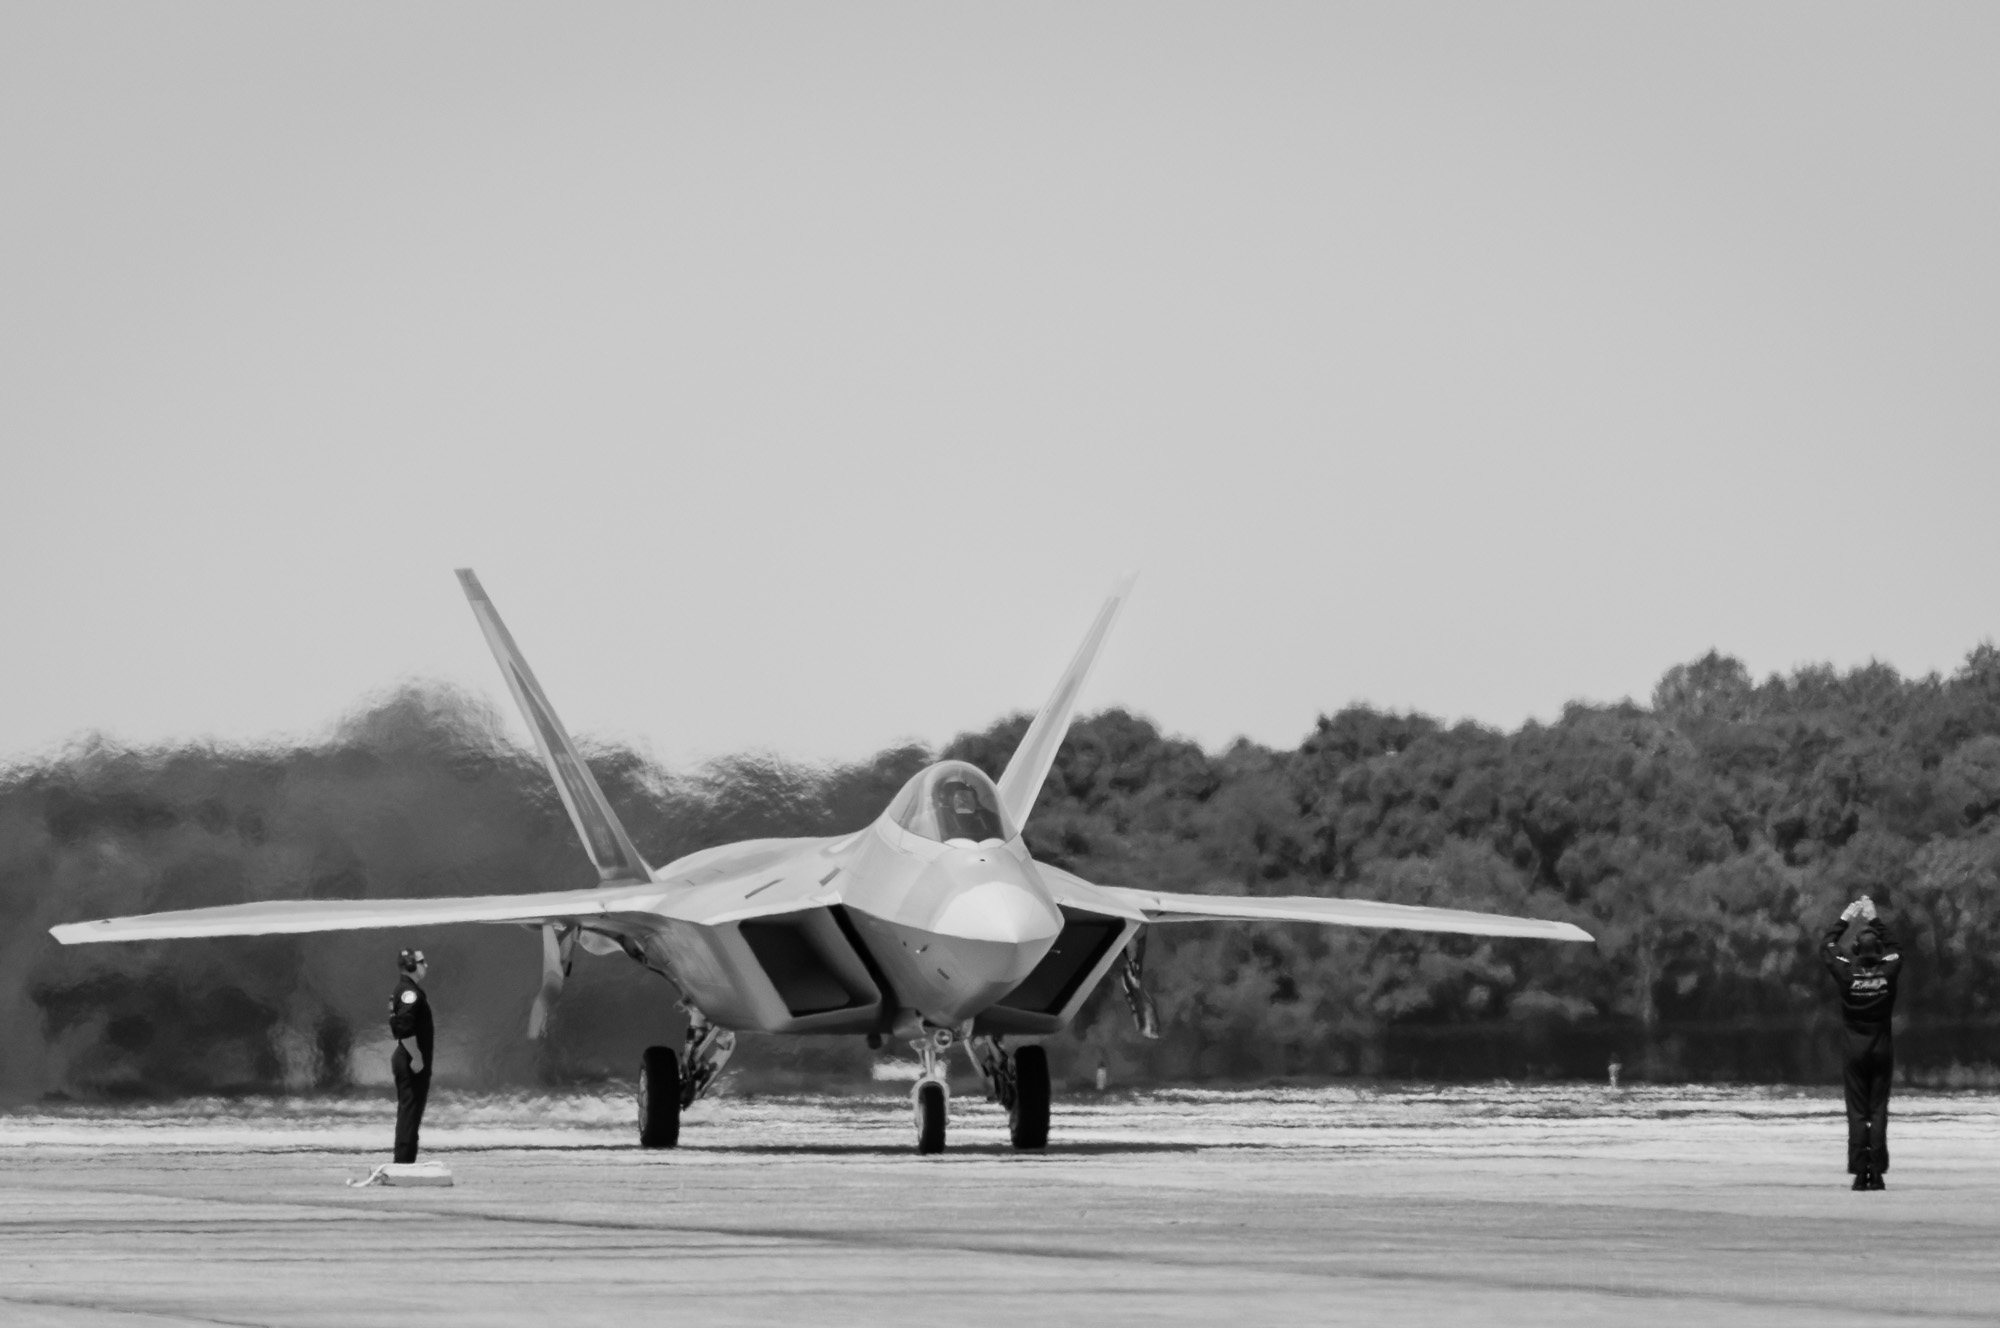 USAF F-22 Raptor taxiing on the runway.